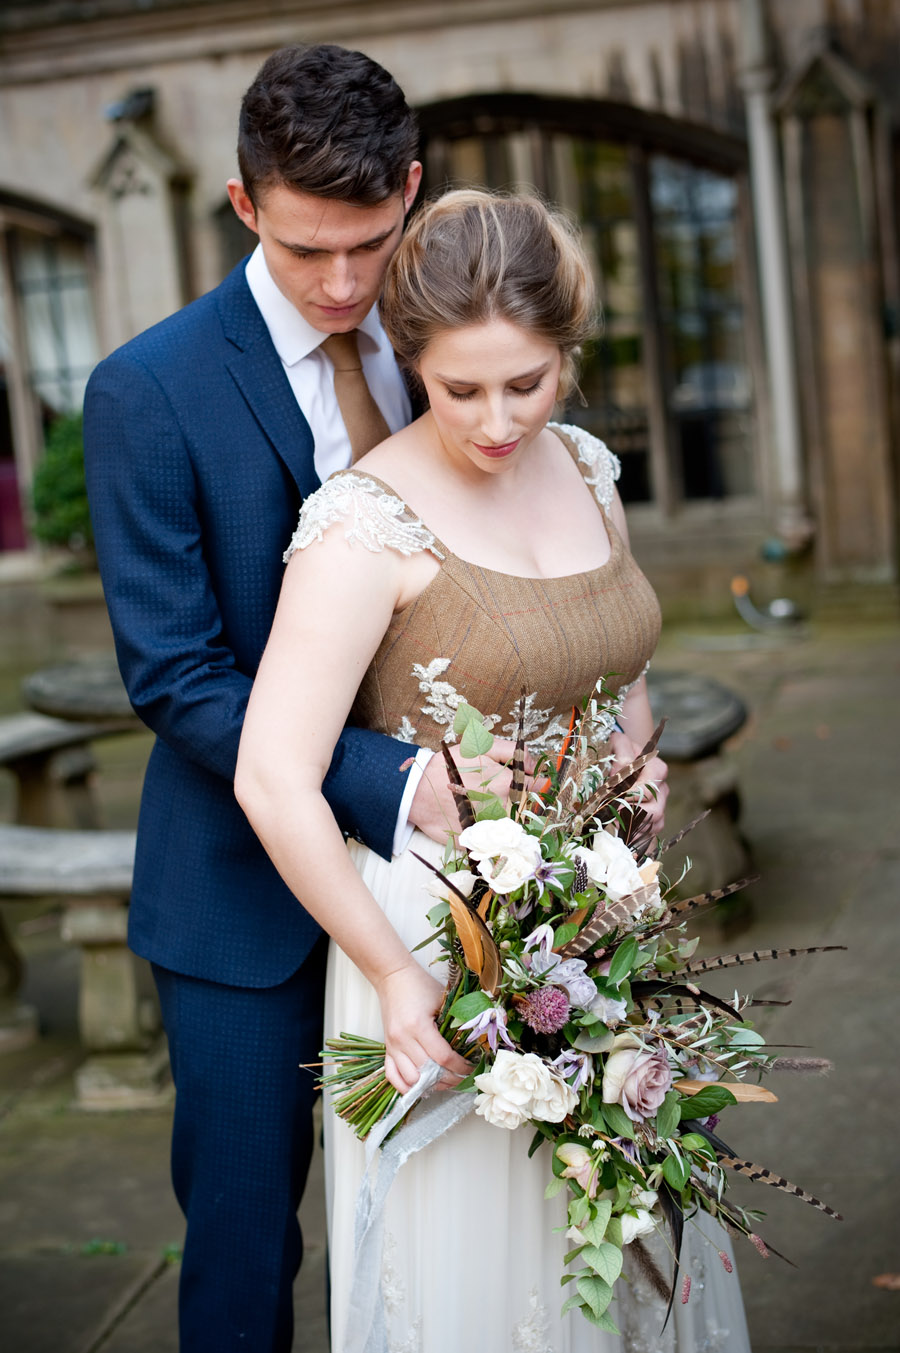 Luxe, modern wedding style ideas by Natalie Hewitt, image credit Rachael Connerton Photography (34)